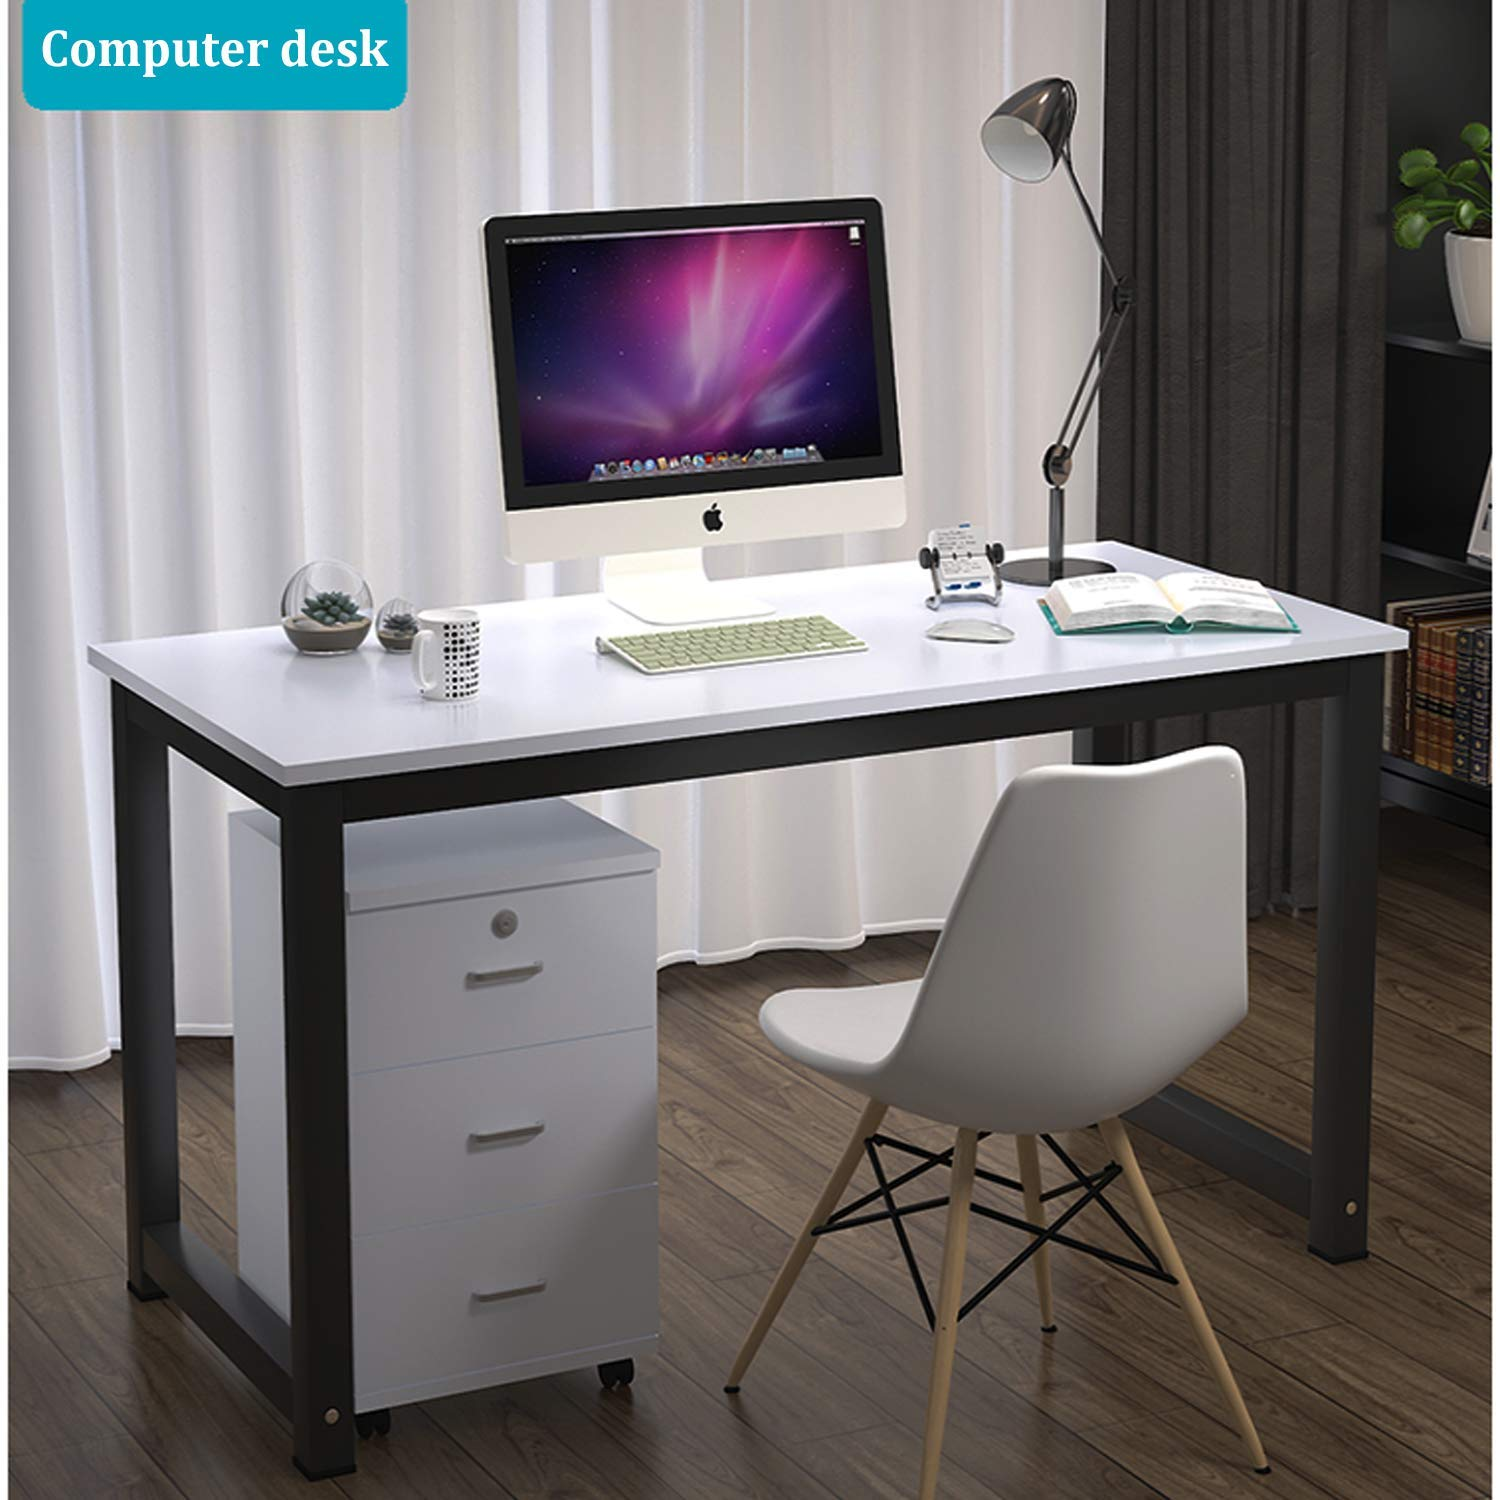 "Long World 47"" Modern Simple Style Computer Table Study Writing Desk Office Desk Rectangular Dining Table PC Desk Laptop Table Small Desk Gaming Desk Workstation Home Office Wood (White & Black Leg)"